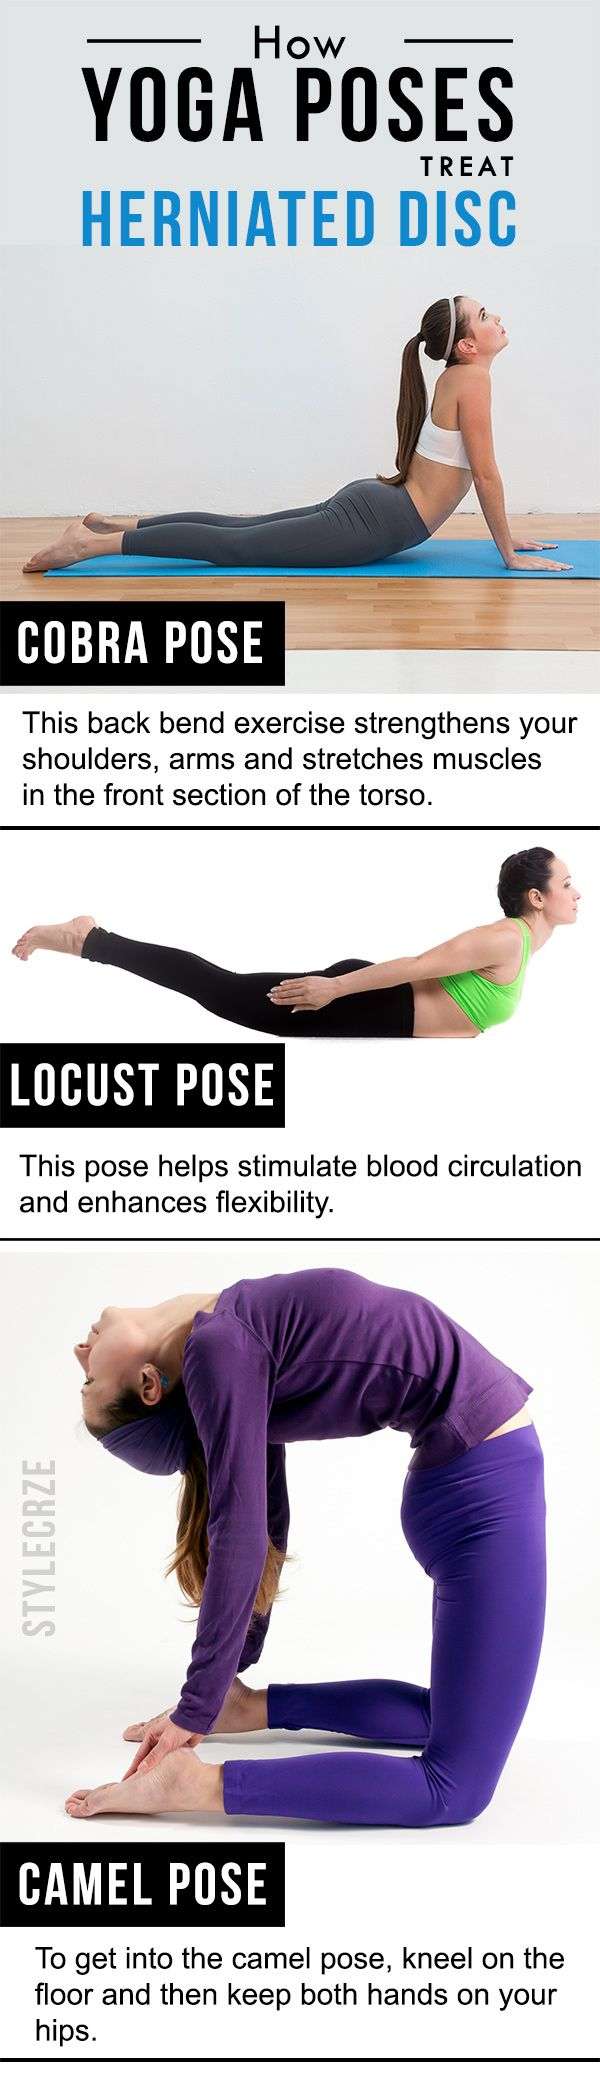 3 Effective Yoga Poses To Treat Herniated Disc